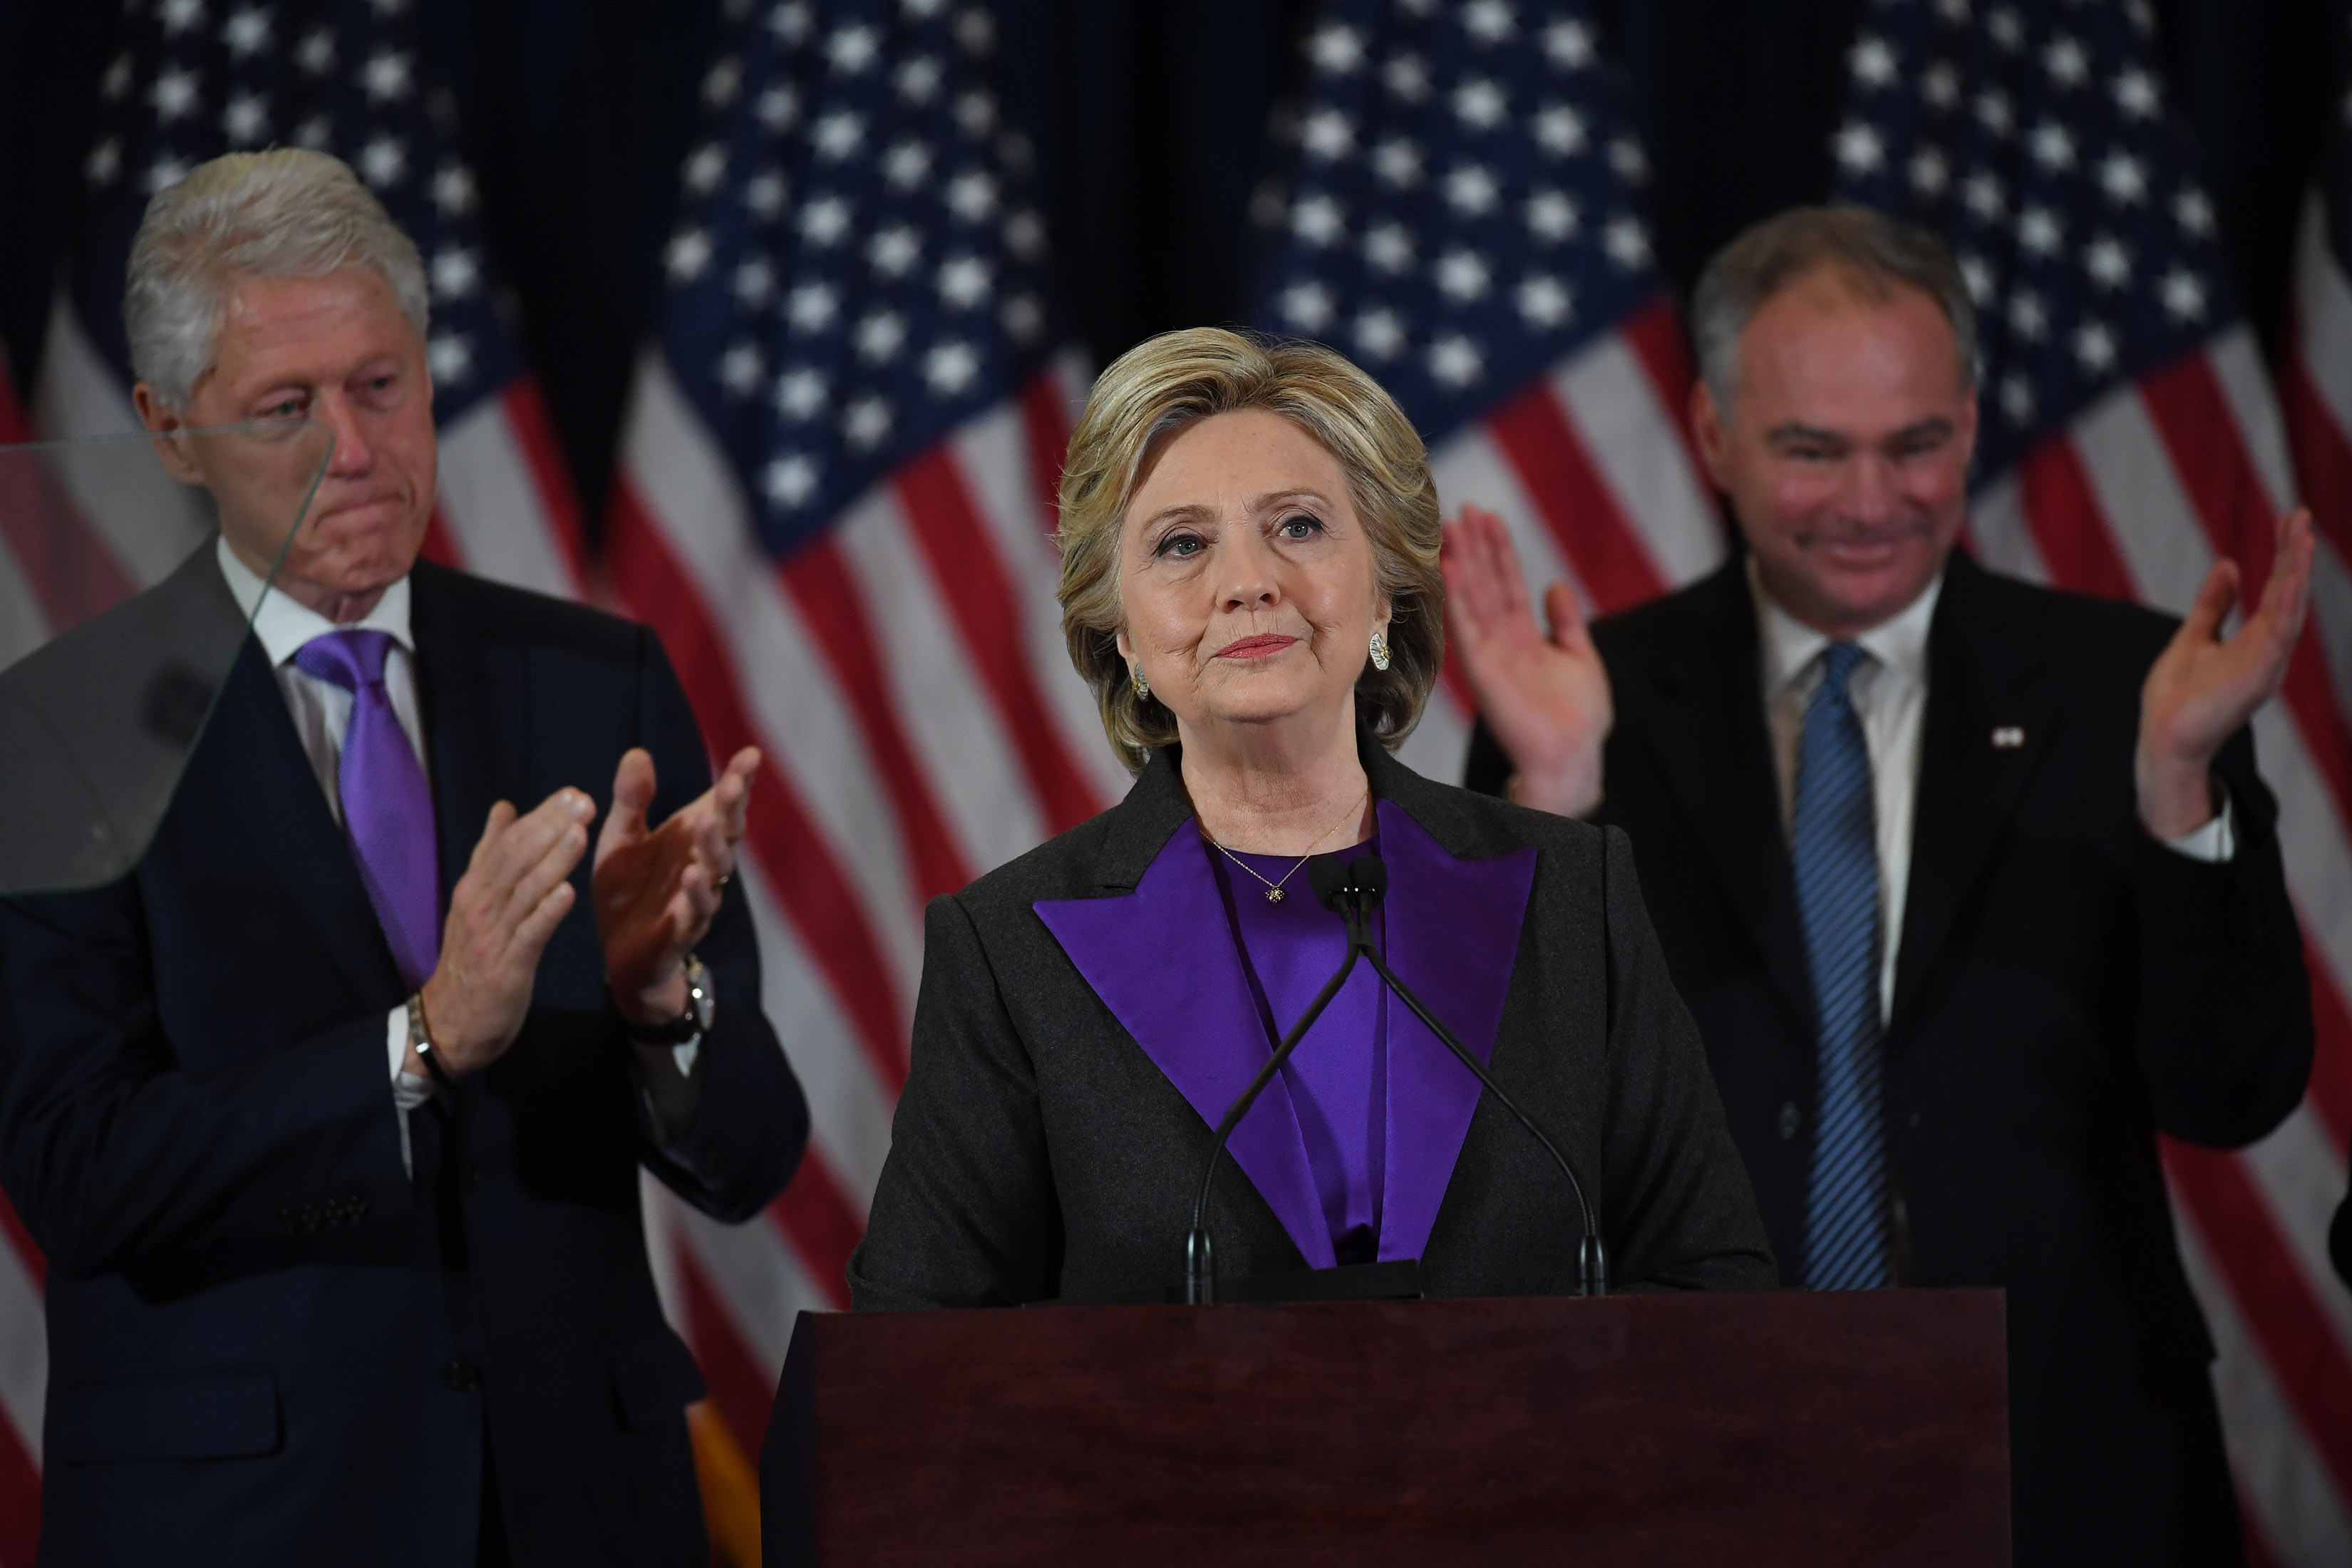 Hillary Clinton speaks during a press conference in New York Cityon Nov. 9, 2016